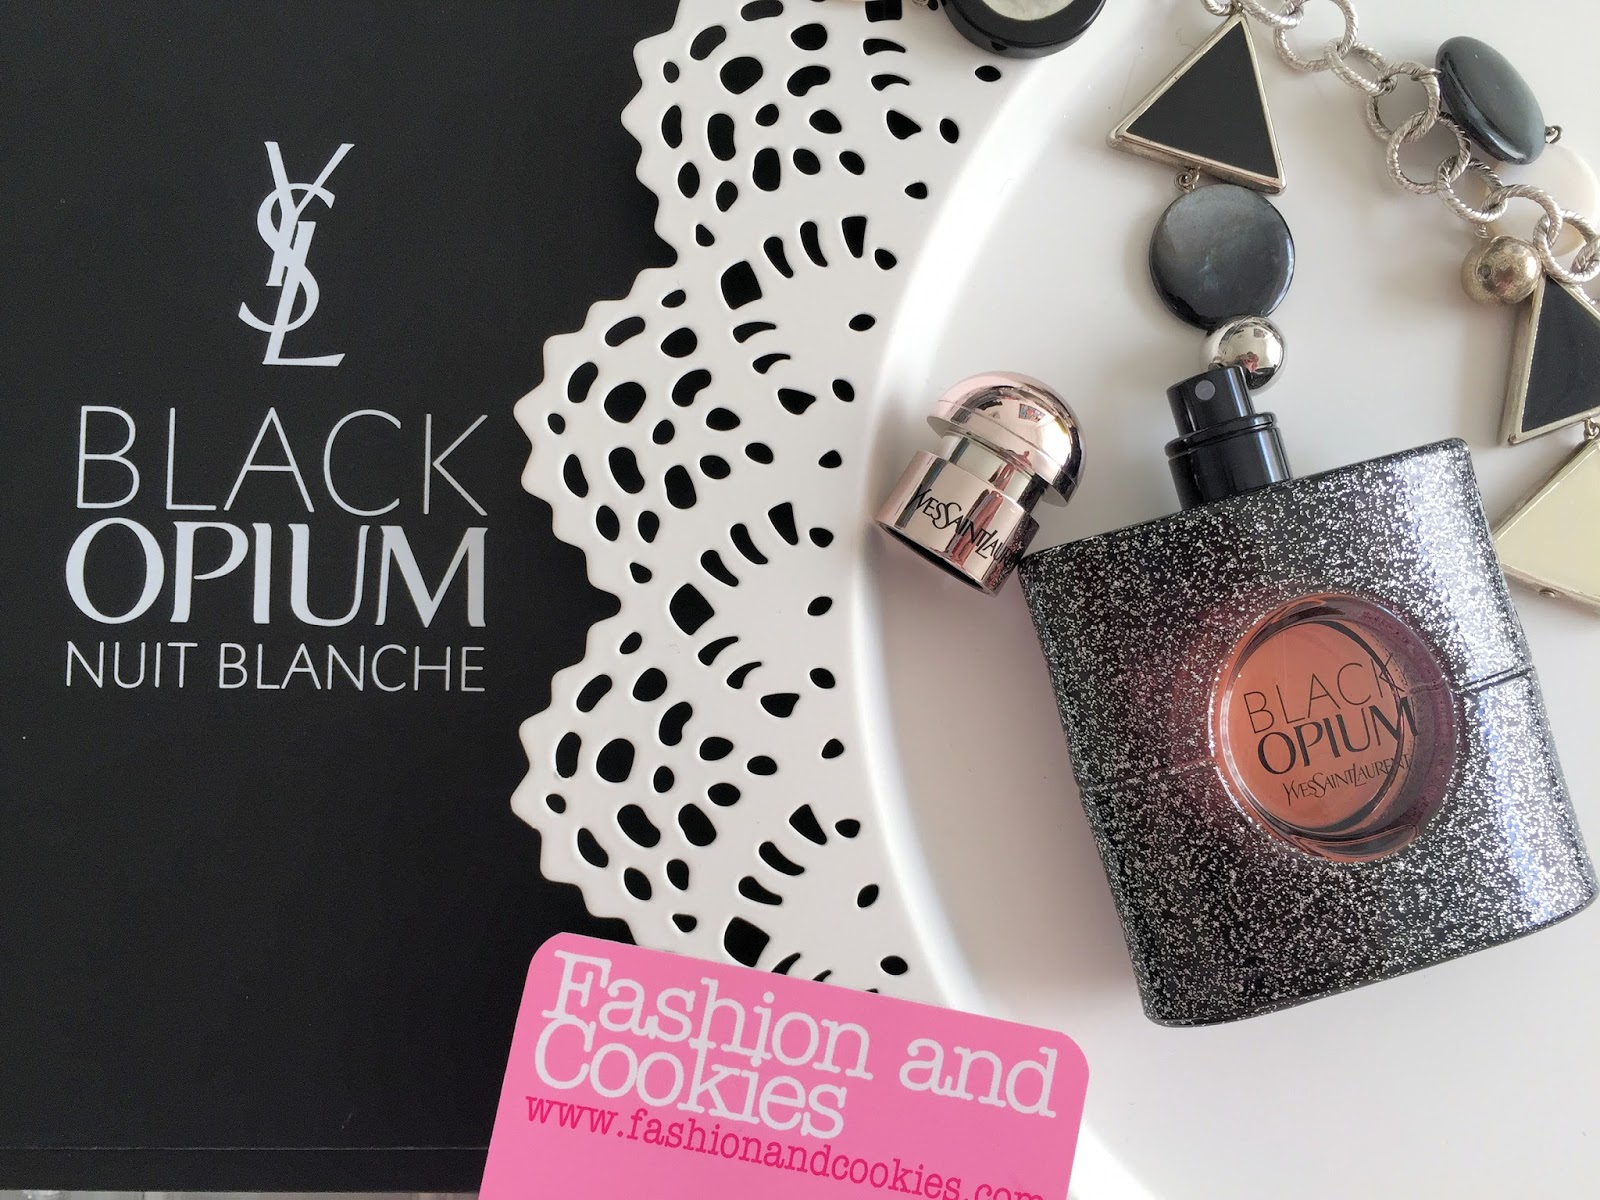 YSL Black Opium Nuit Blanche fragrance review and presentation on Fashion and Cookies fashion and beauty blog, beauty blogger